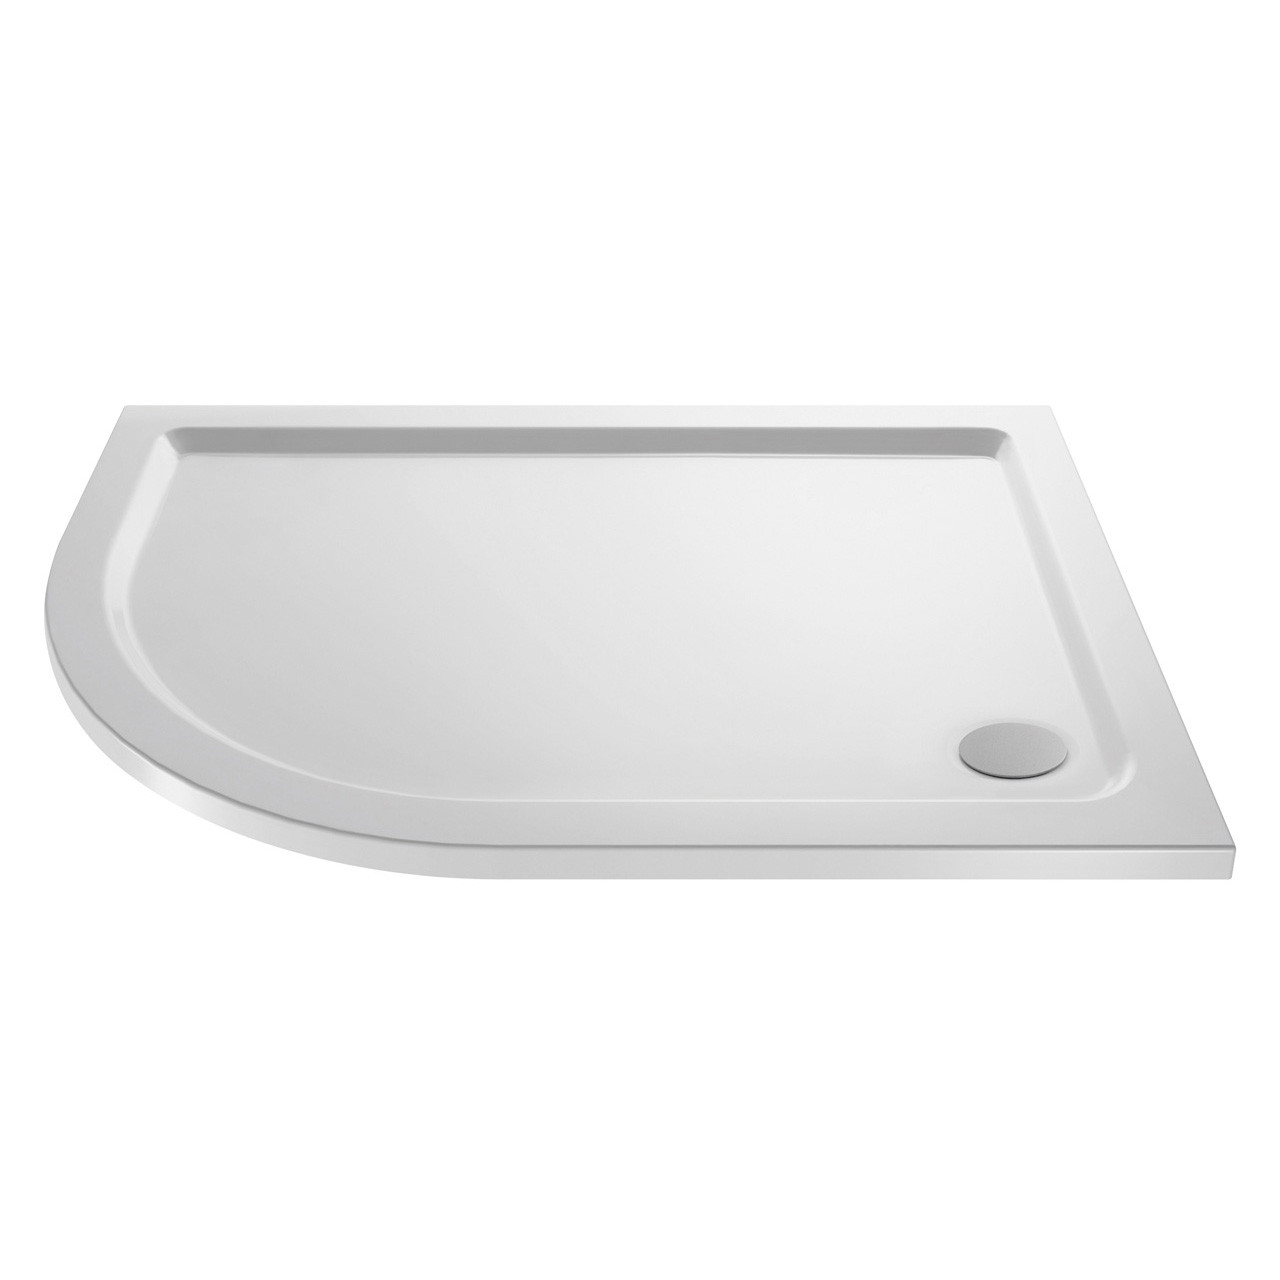 Nuie Pearlstone 1200mm x 900mm Left Hand Offset Quadrant Shower Tray - NTP114